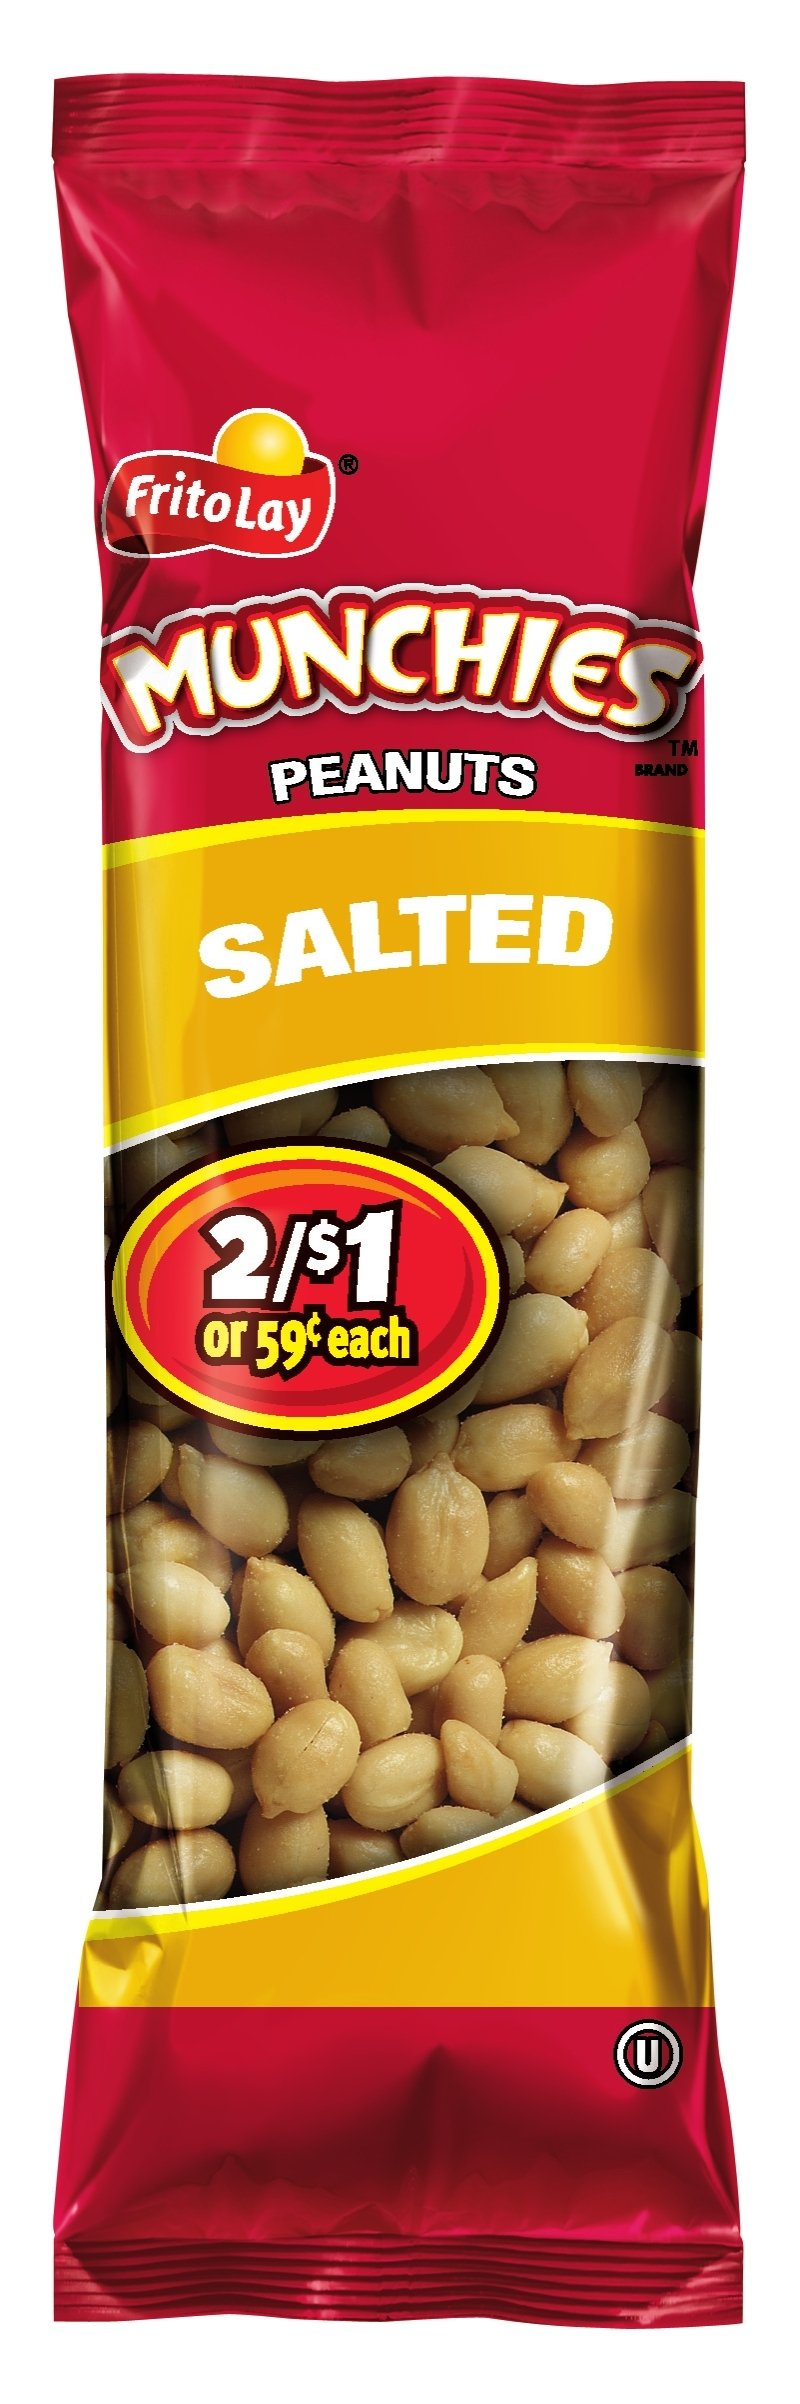 Munchies Peanuts, Salted, 1.63 Ounce (Pack of 32) by Munchies